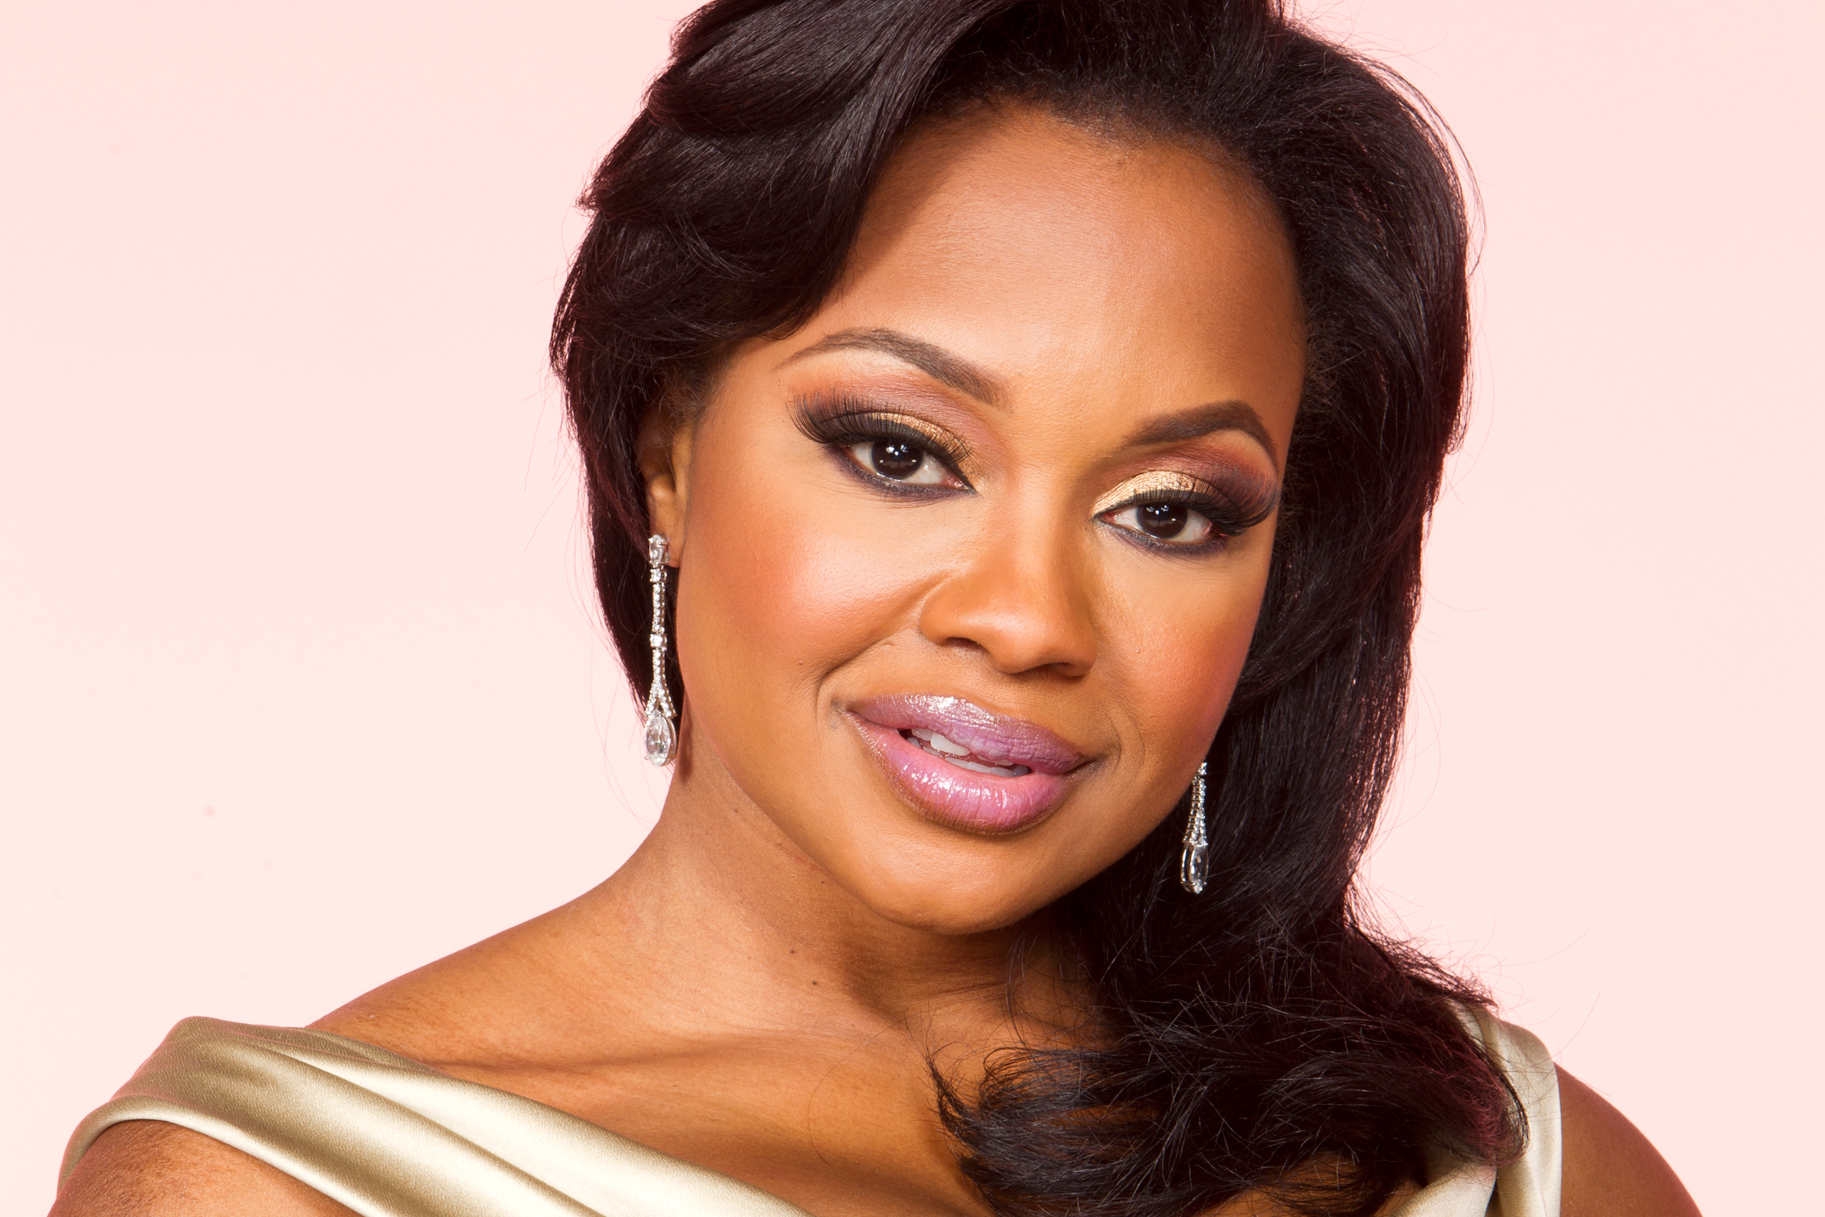 Phaedra Parks' Fans Are Grateful To Her For Posting This Video